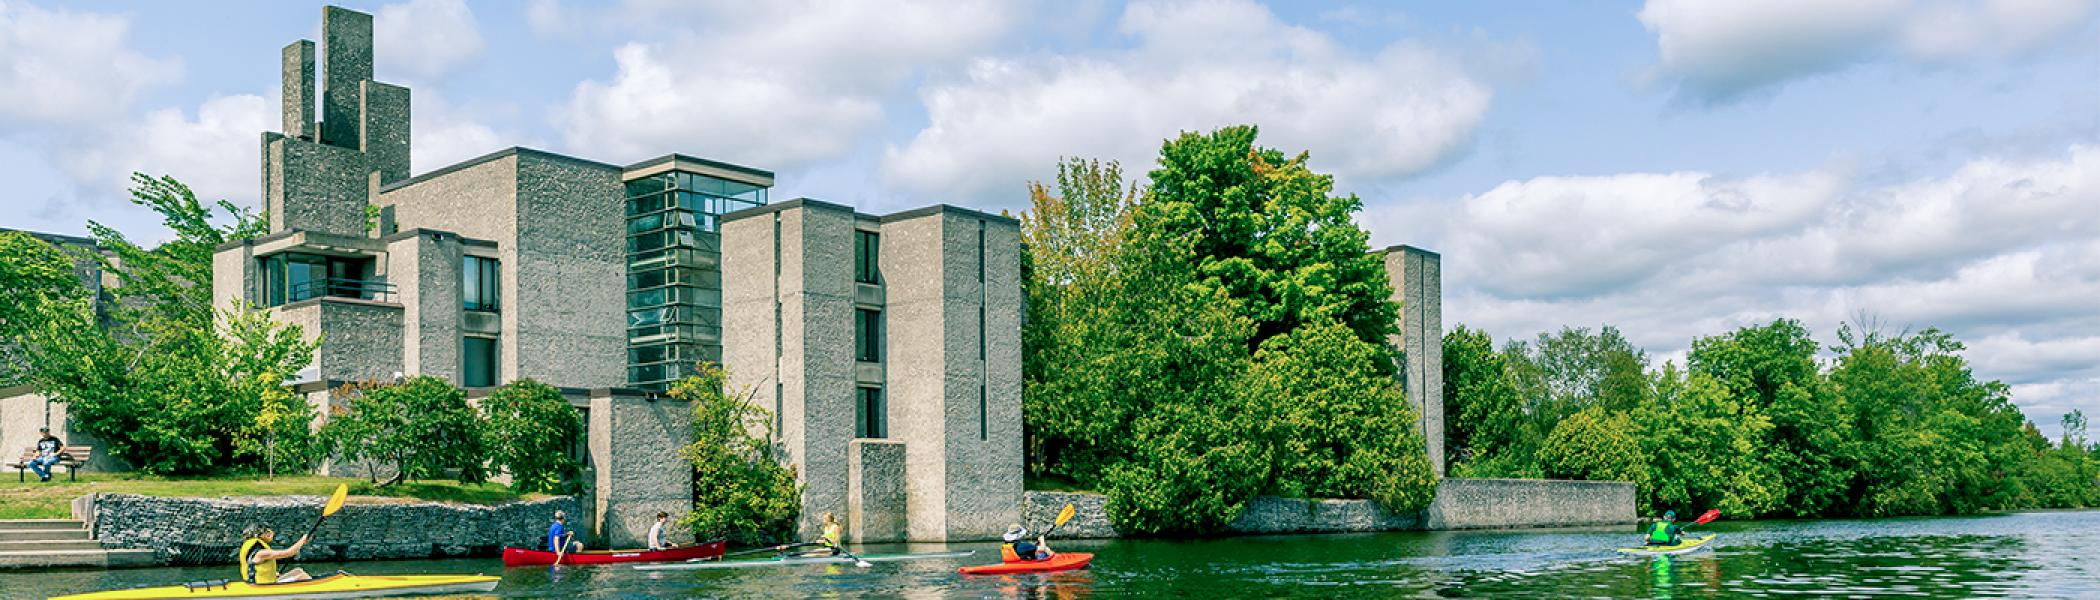 Champlain College photographed against the water.